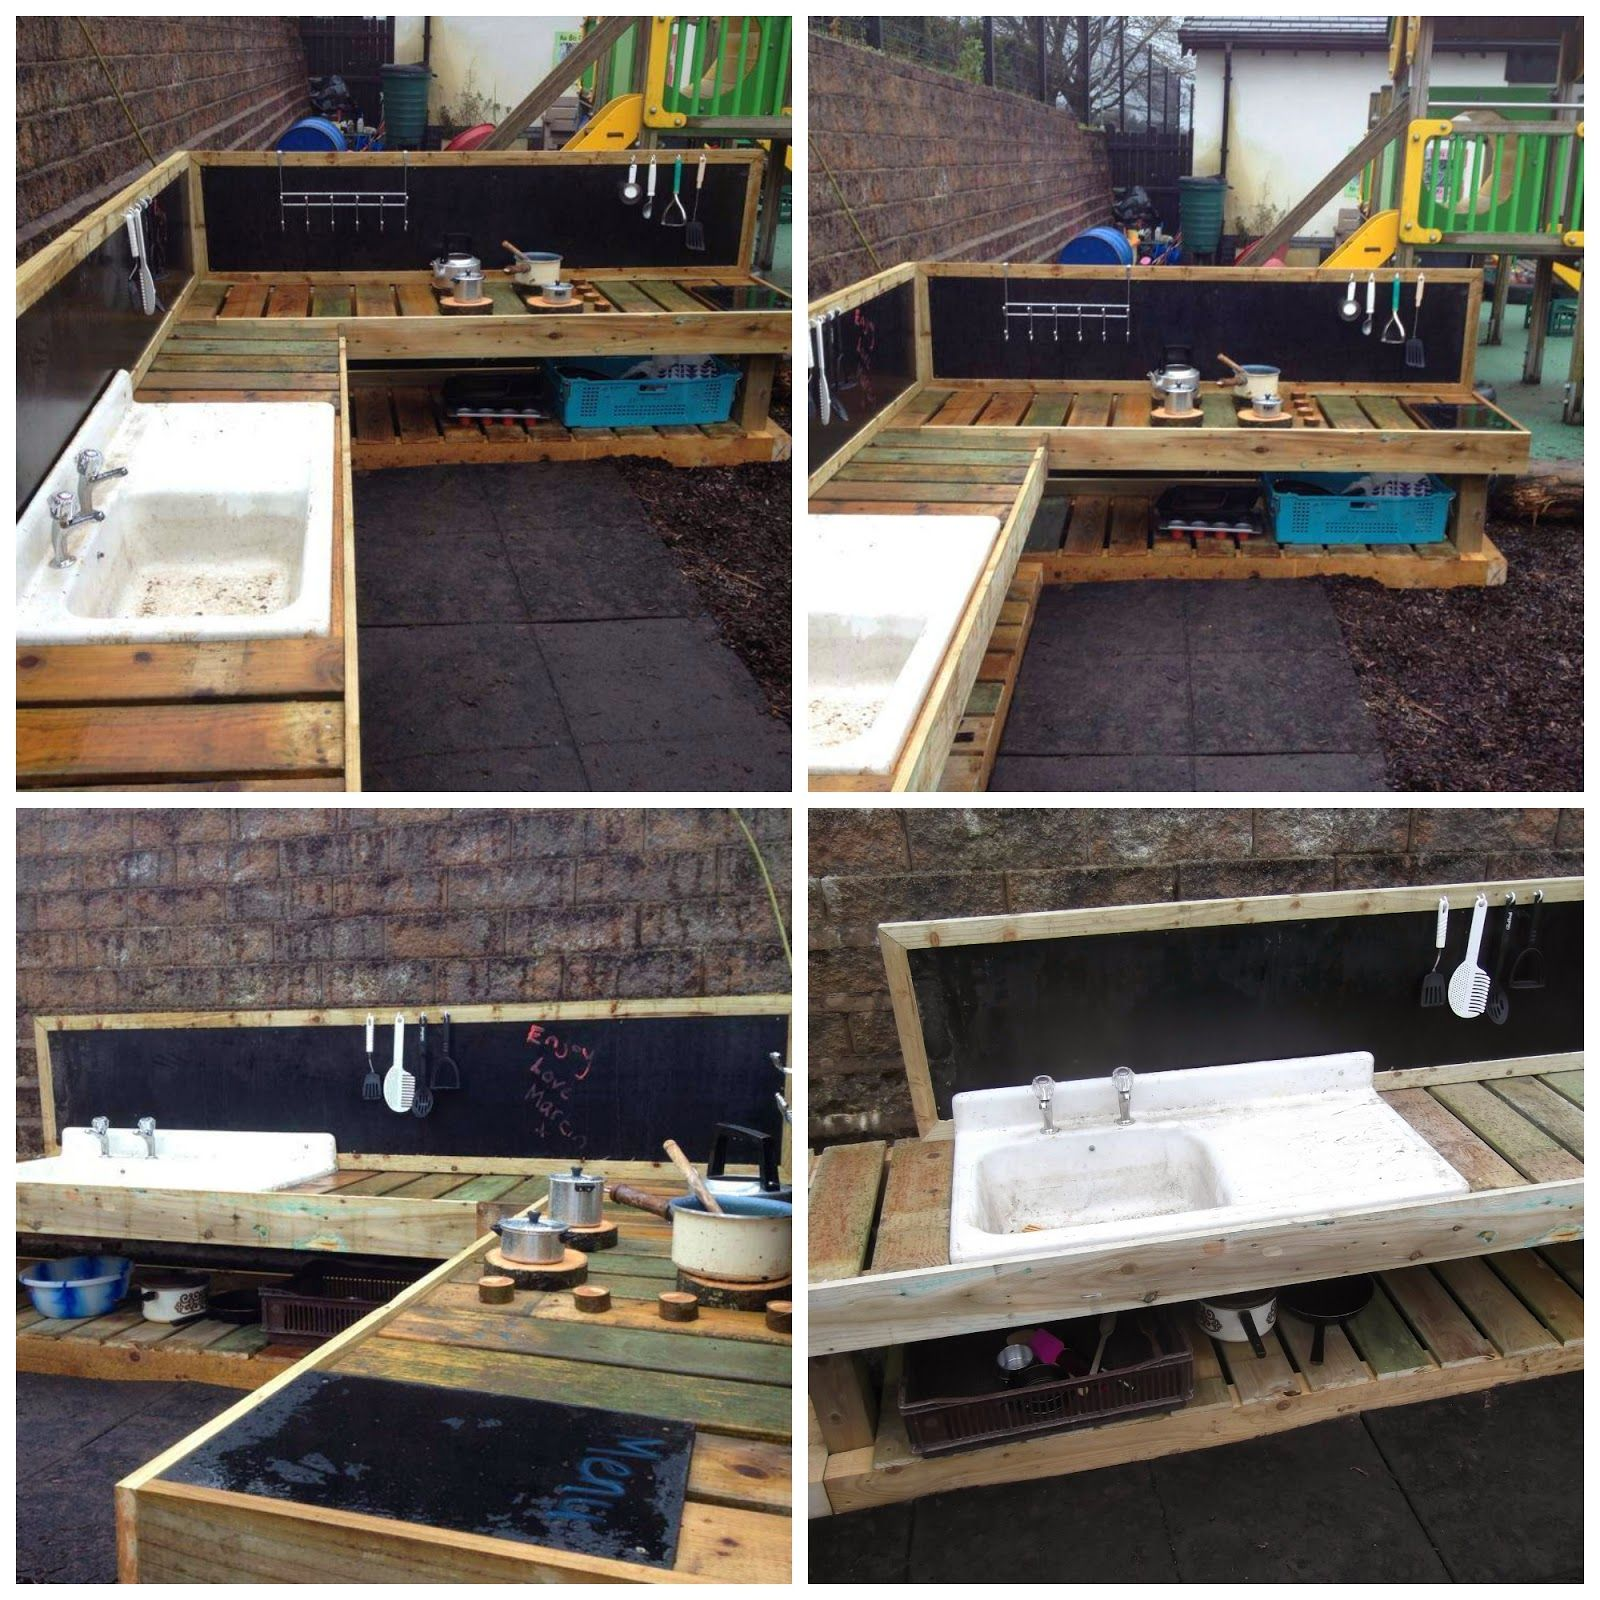 Mud kitchen upcycled pallet mud kitchen pallet kitchen counter with - Learning For Life A Deluxe Mud Kitchen